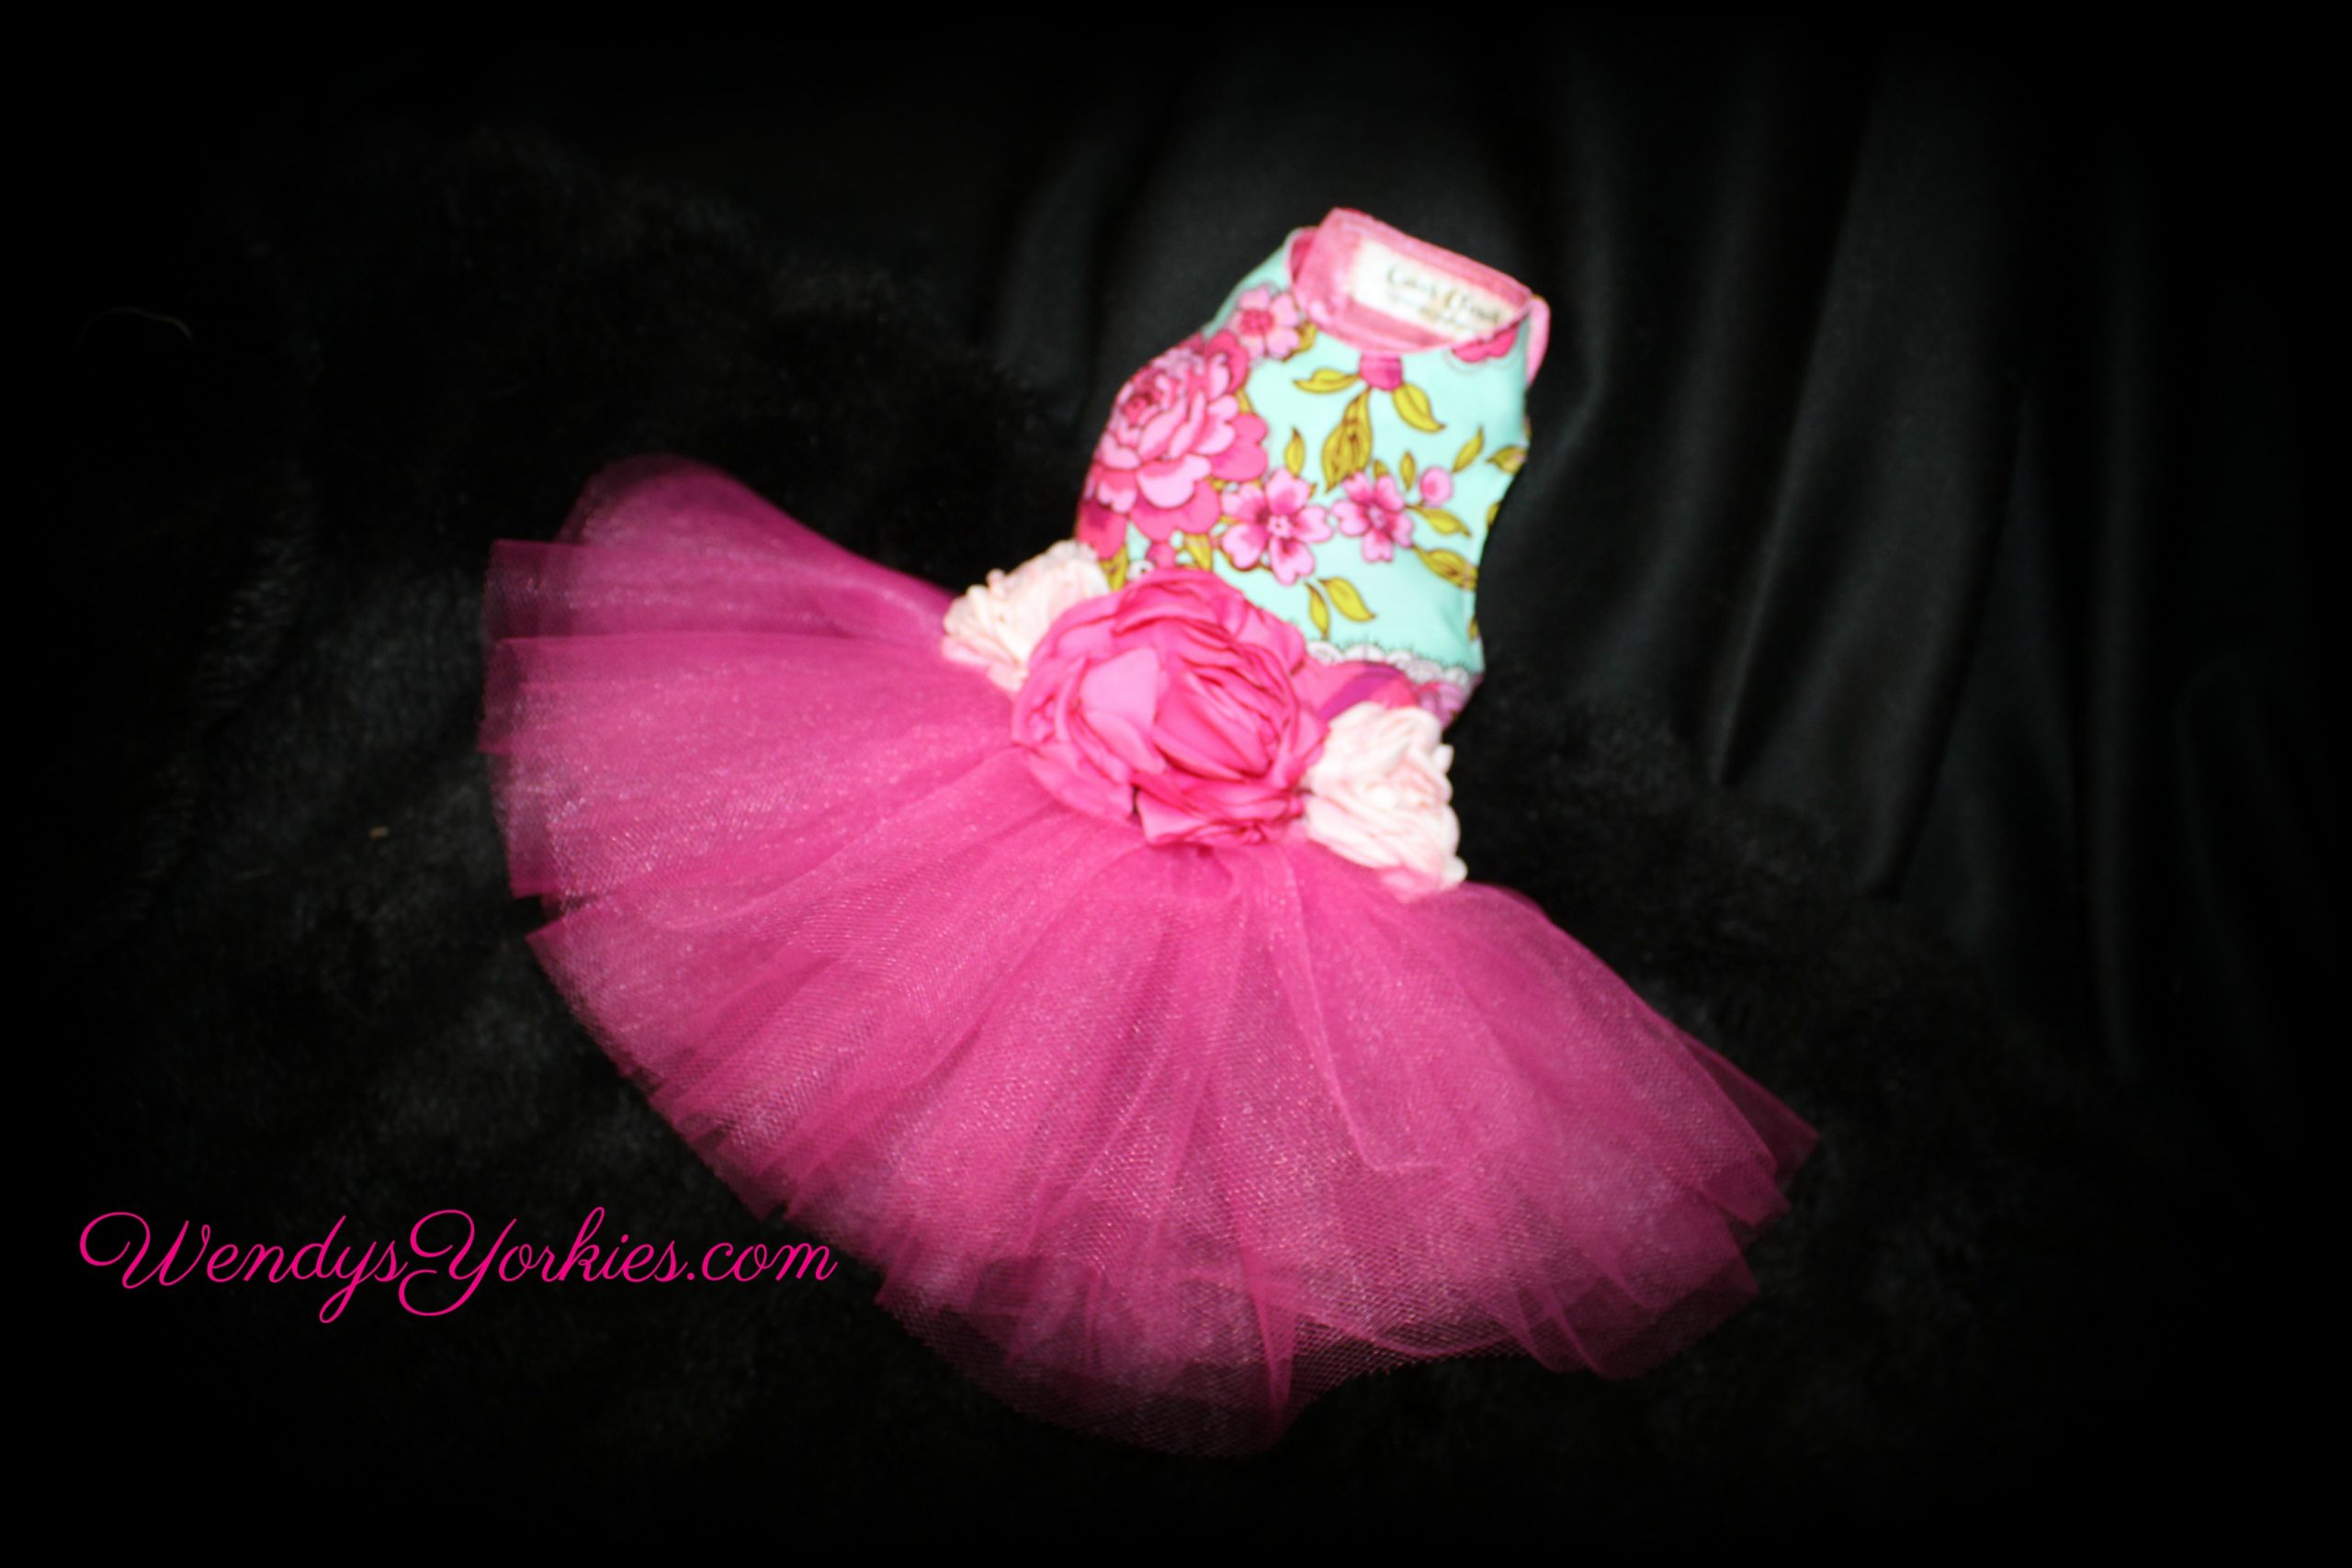 Roses, Dog Tutu dress, WendysYorkies.com